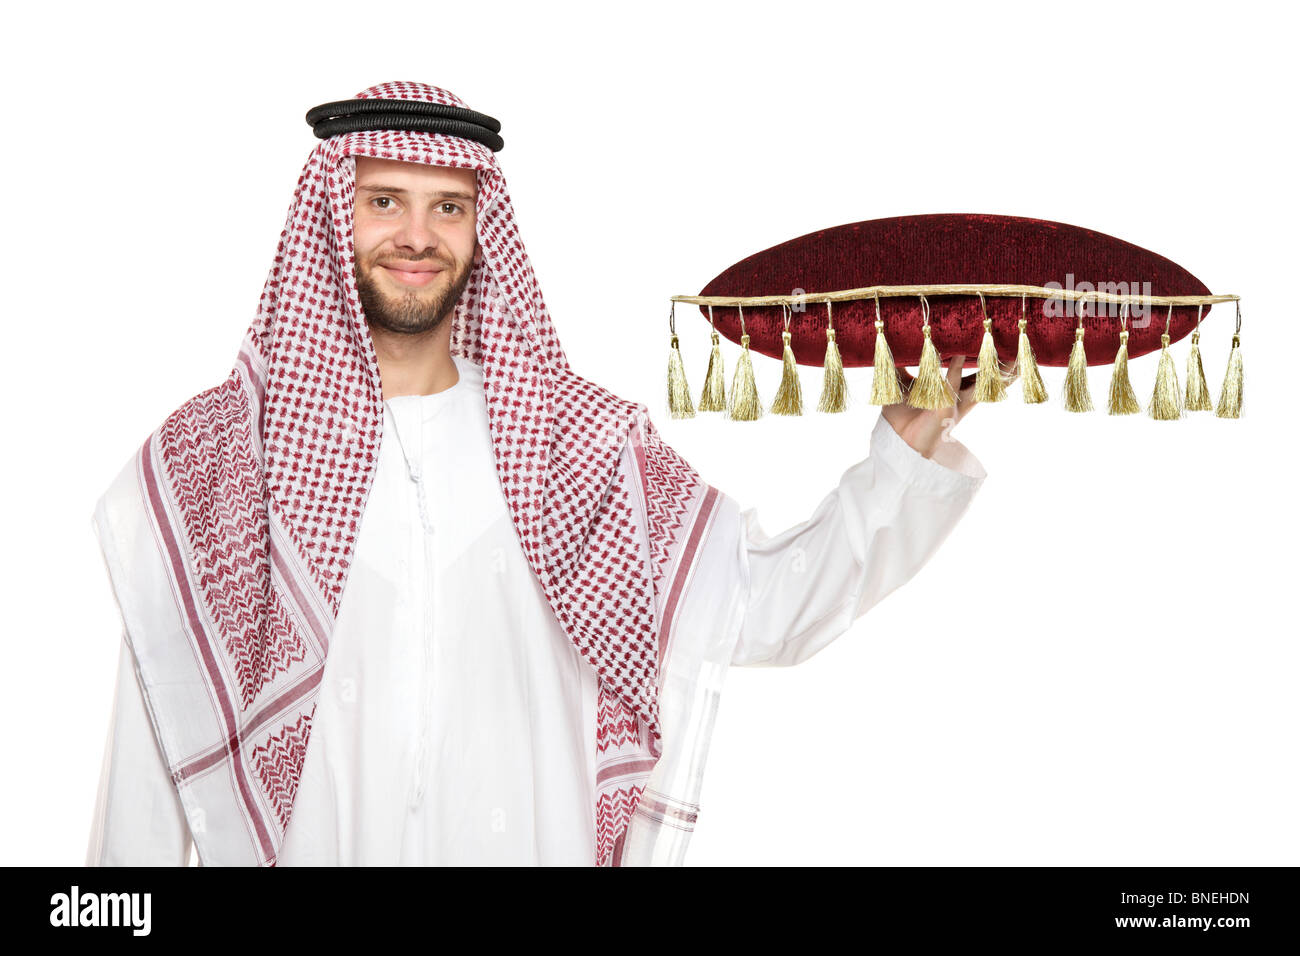 An arab person holding a pillow Stock Photo